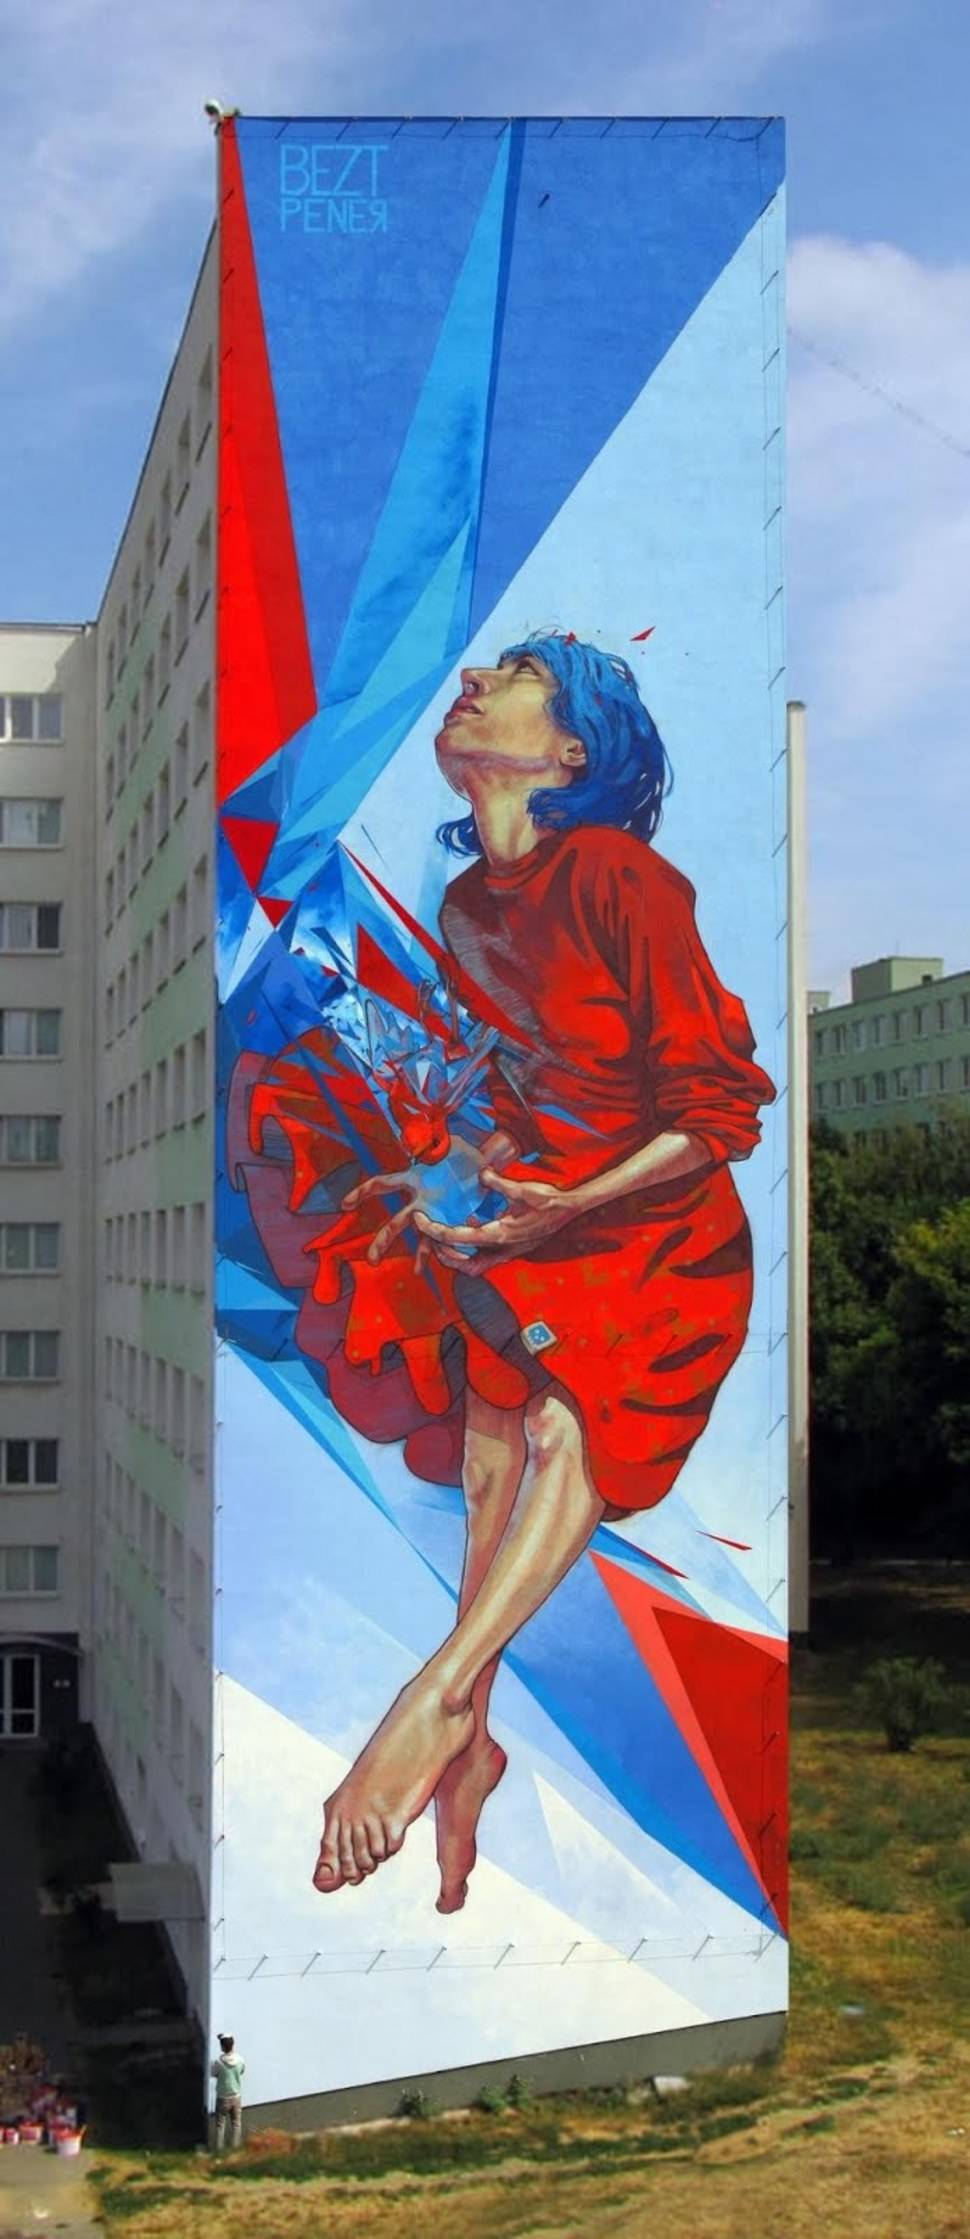 The Healer Tower Block Art por Bezt and Pener - Polonia 2